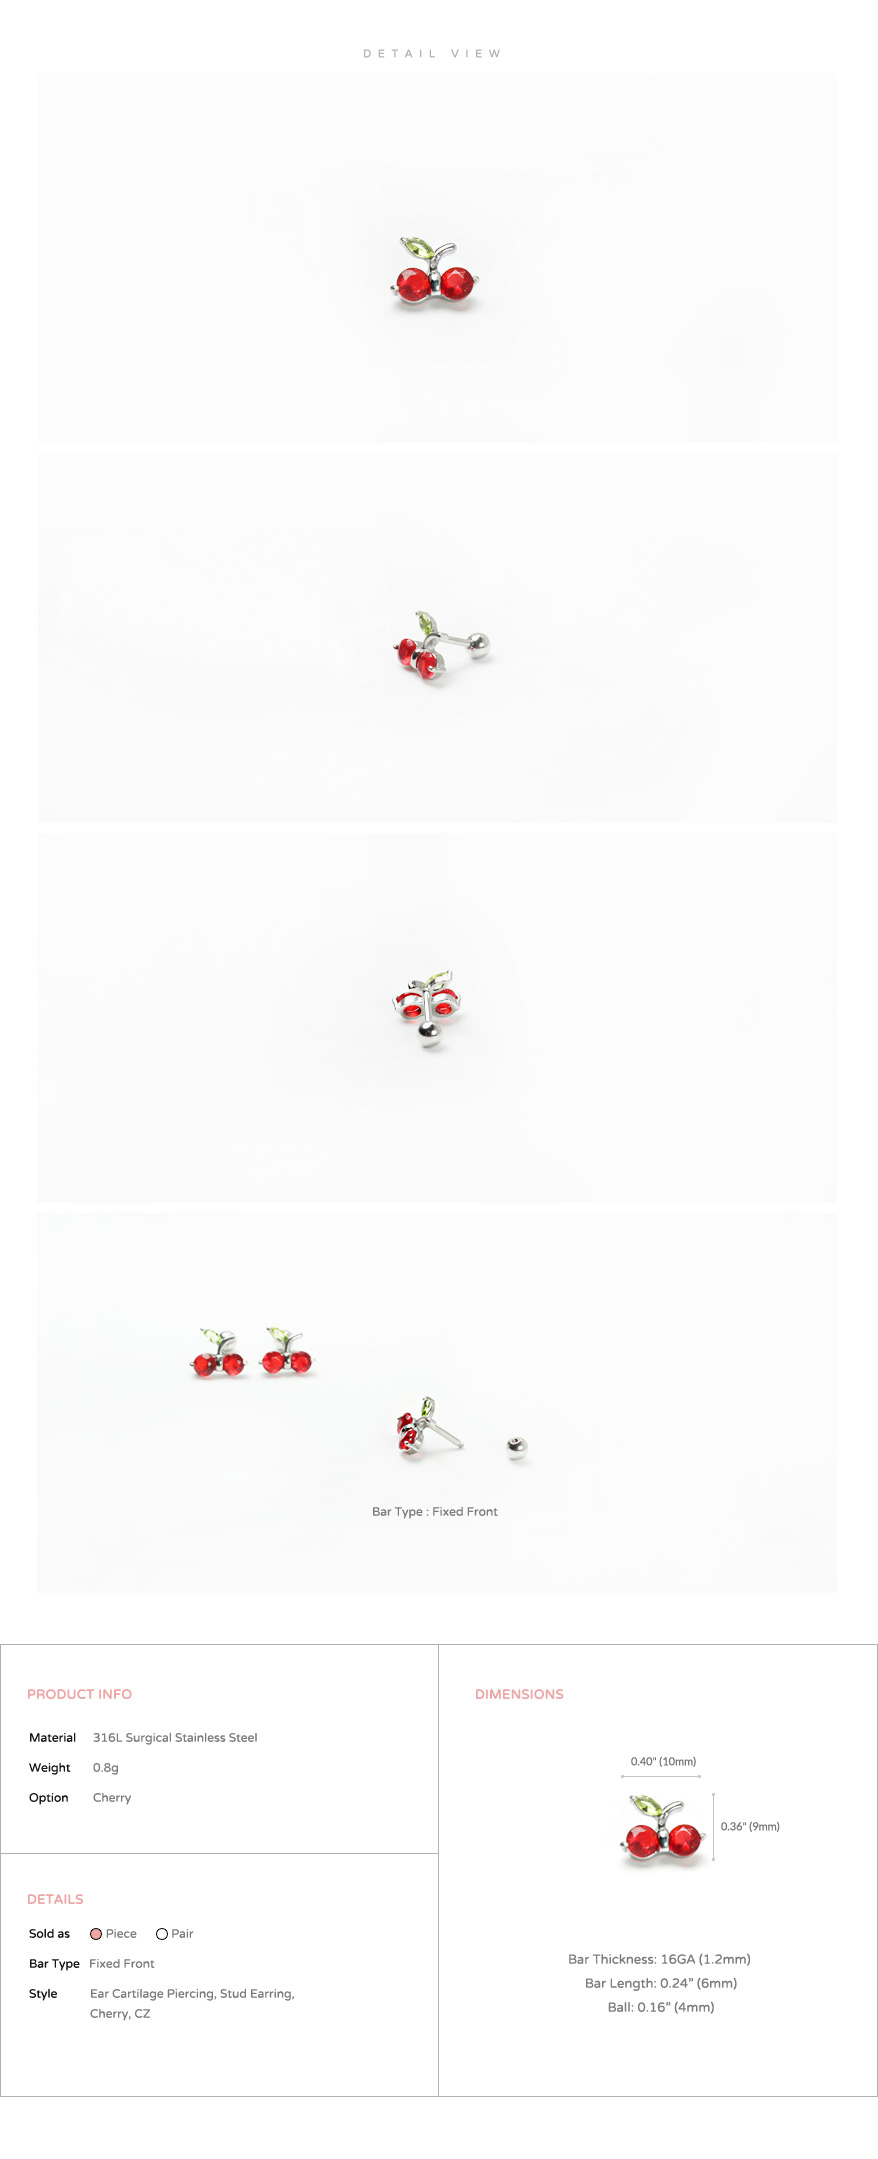 ear_studs_piercing_Cartilage_16g_316l_Stainless_Steel_earring_tragus_korean_asian_style_barbell_cherry_gem_cubic_cz_2